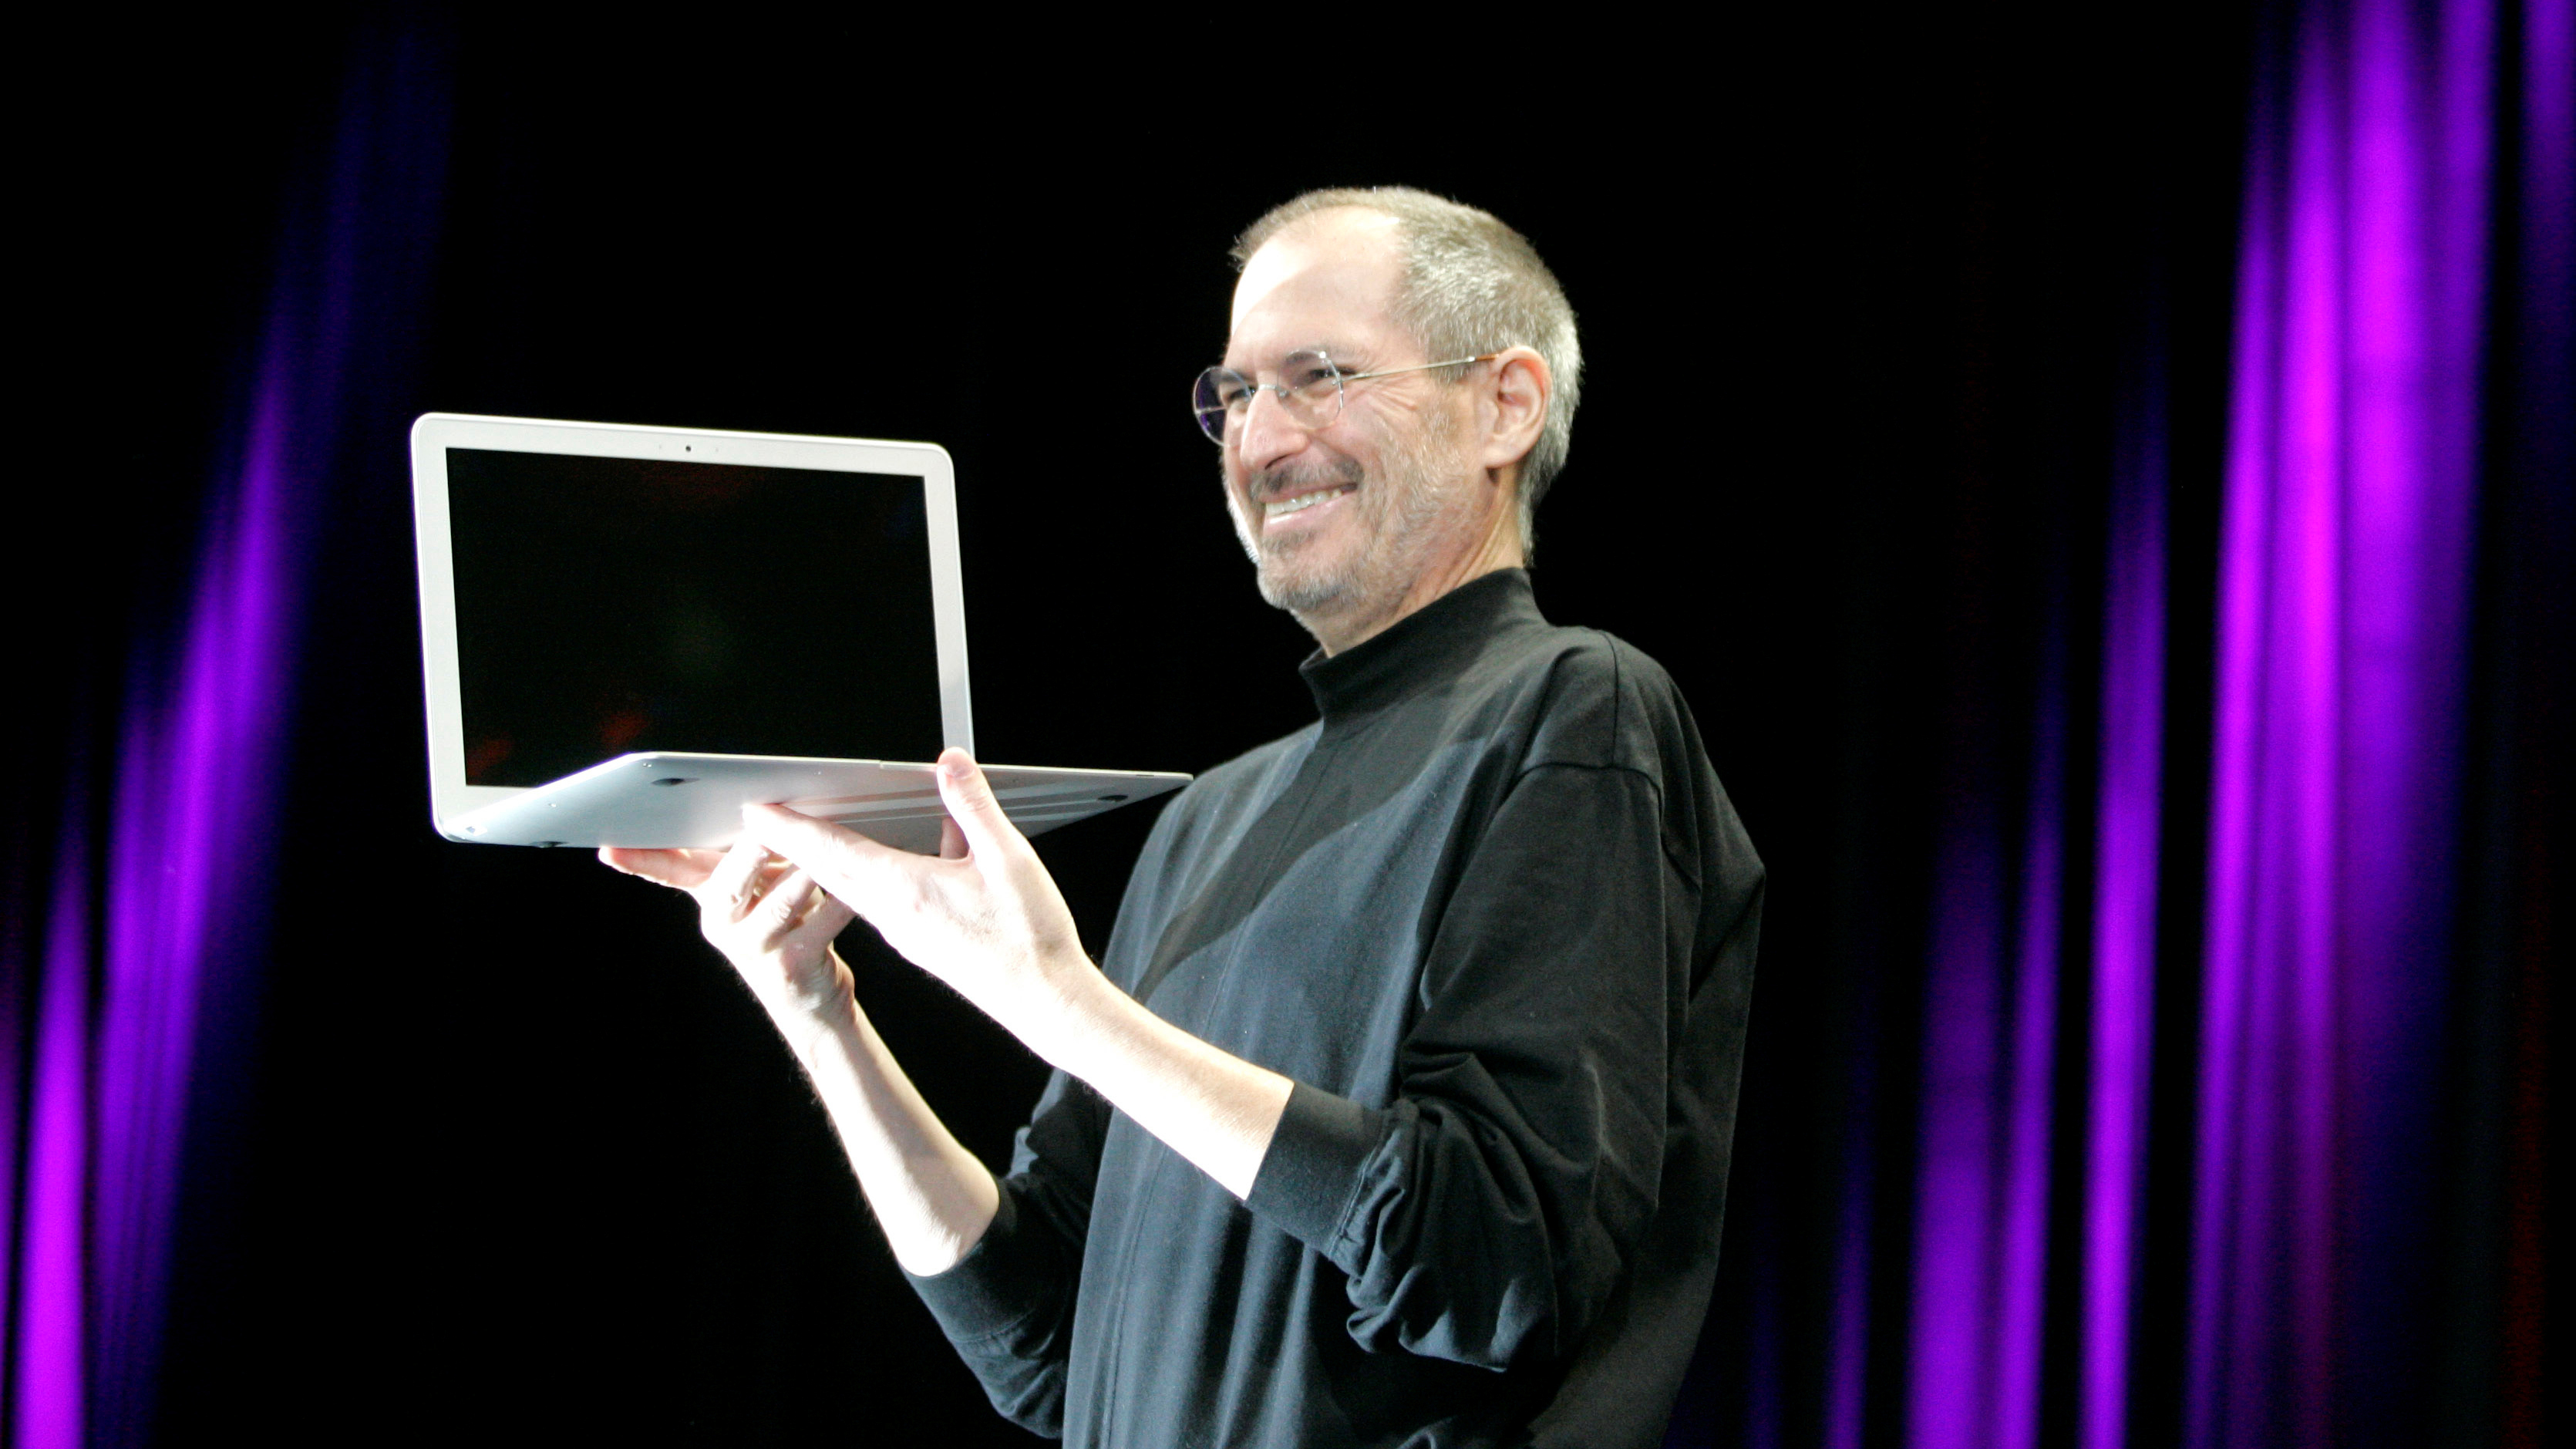 Apple CEO Steve Jobs holds up the new MacBook Air portable computer after giving the keynote address at Apple MacWorld Conference in San Francisco, Tuesday, Jan. 15, 2008. (AP Photo/Jeff Chiu)